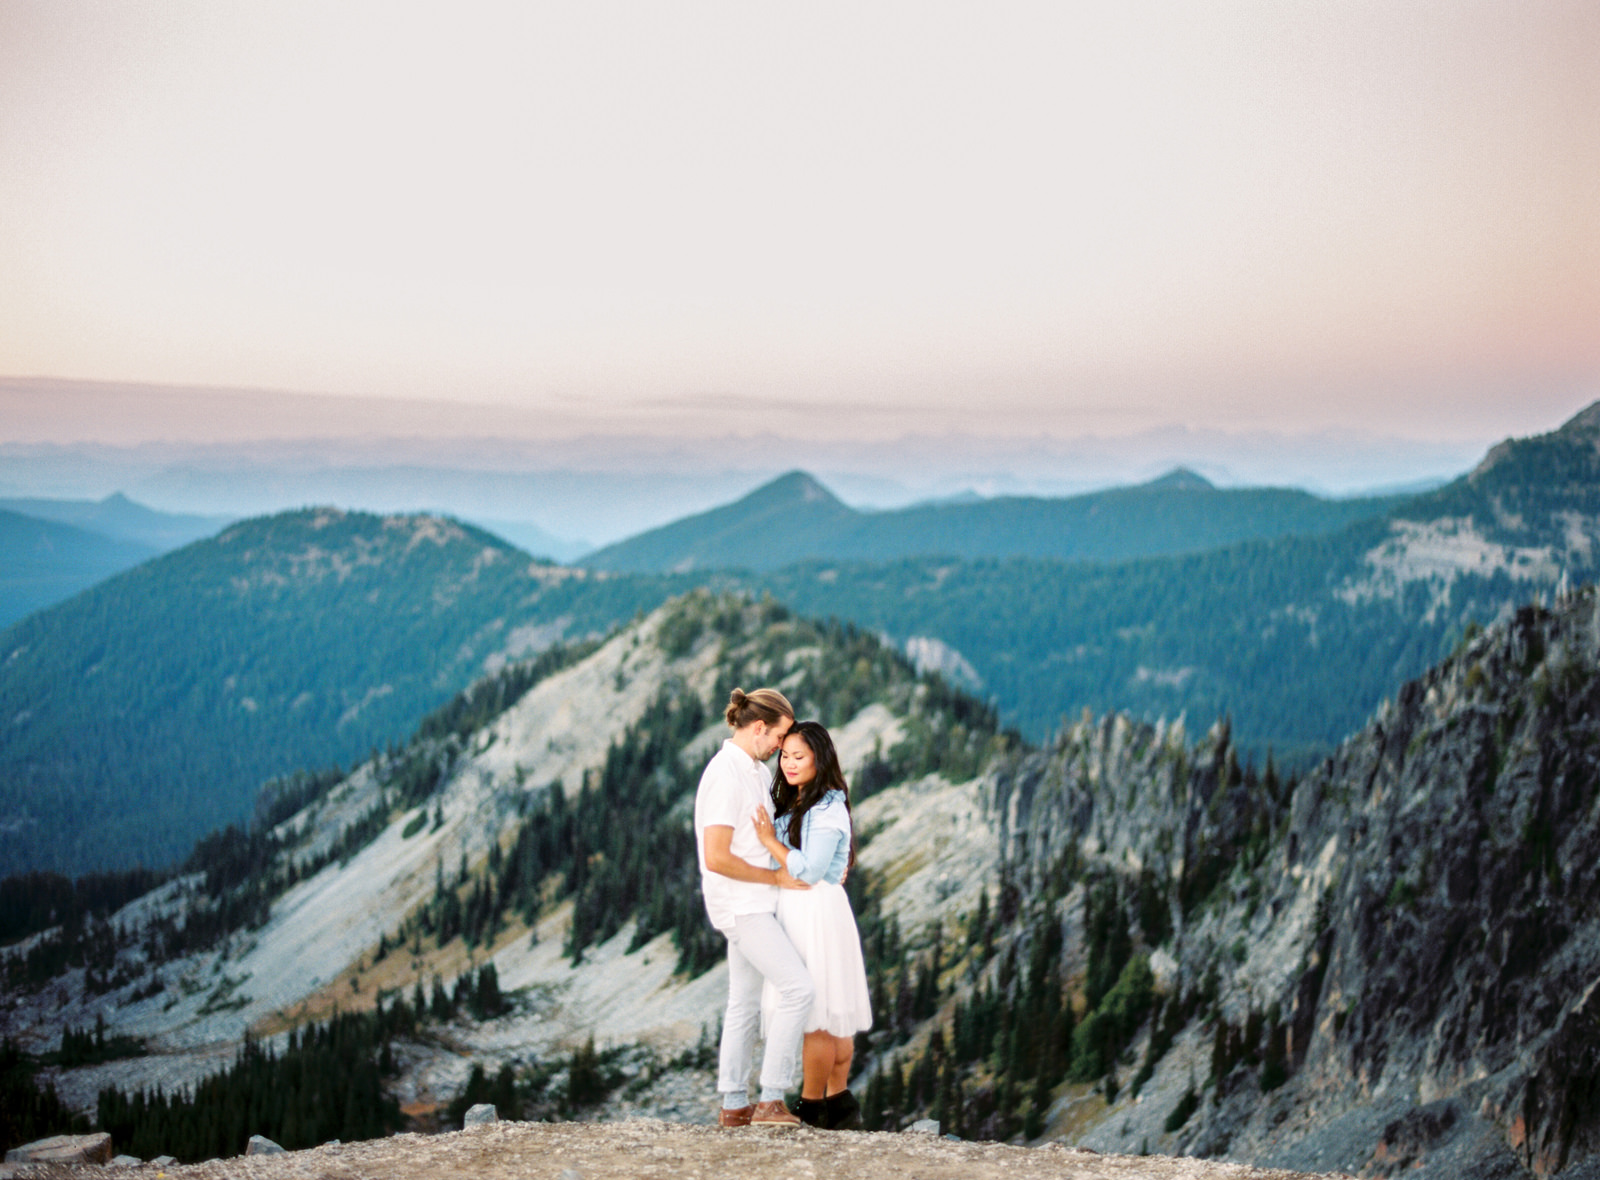 186-epic-mountain-engagement-session-at-mt-rainer-by-washington-film-photographer.jpg